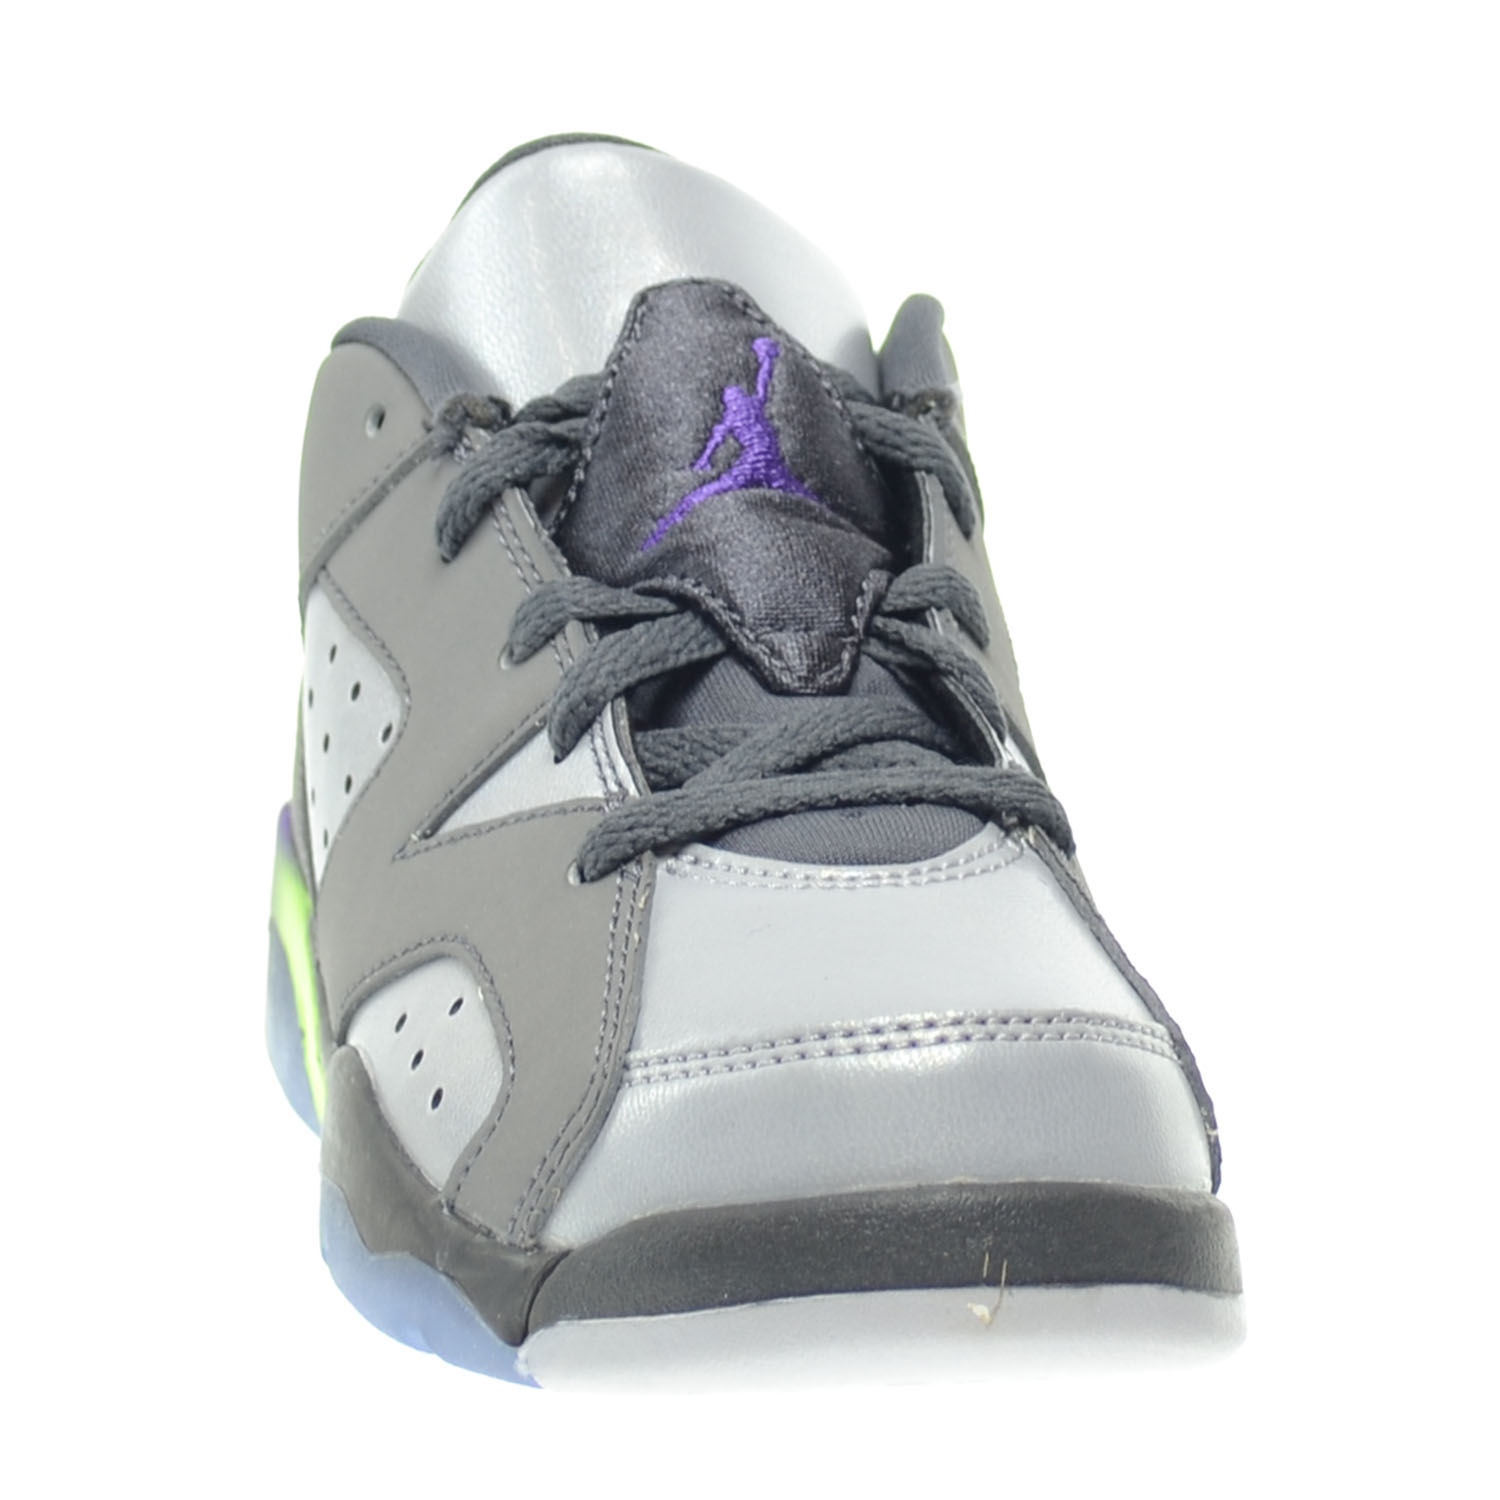 a96cc4d178ed Jordan 6 Retro Low GP Little Kids Shoes Dark Grey Ultraviolet-Wolf Grey-Ghost  Green 768884-008